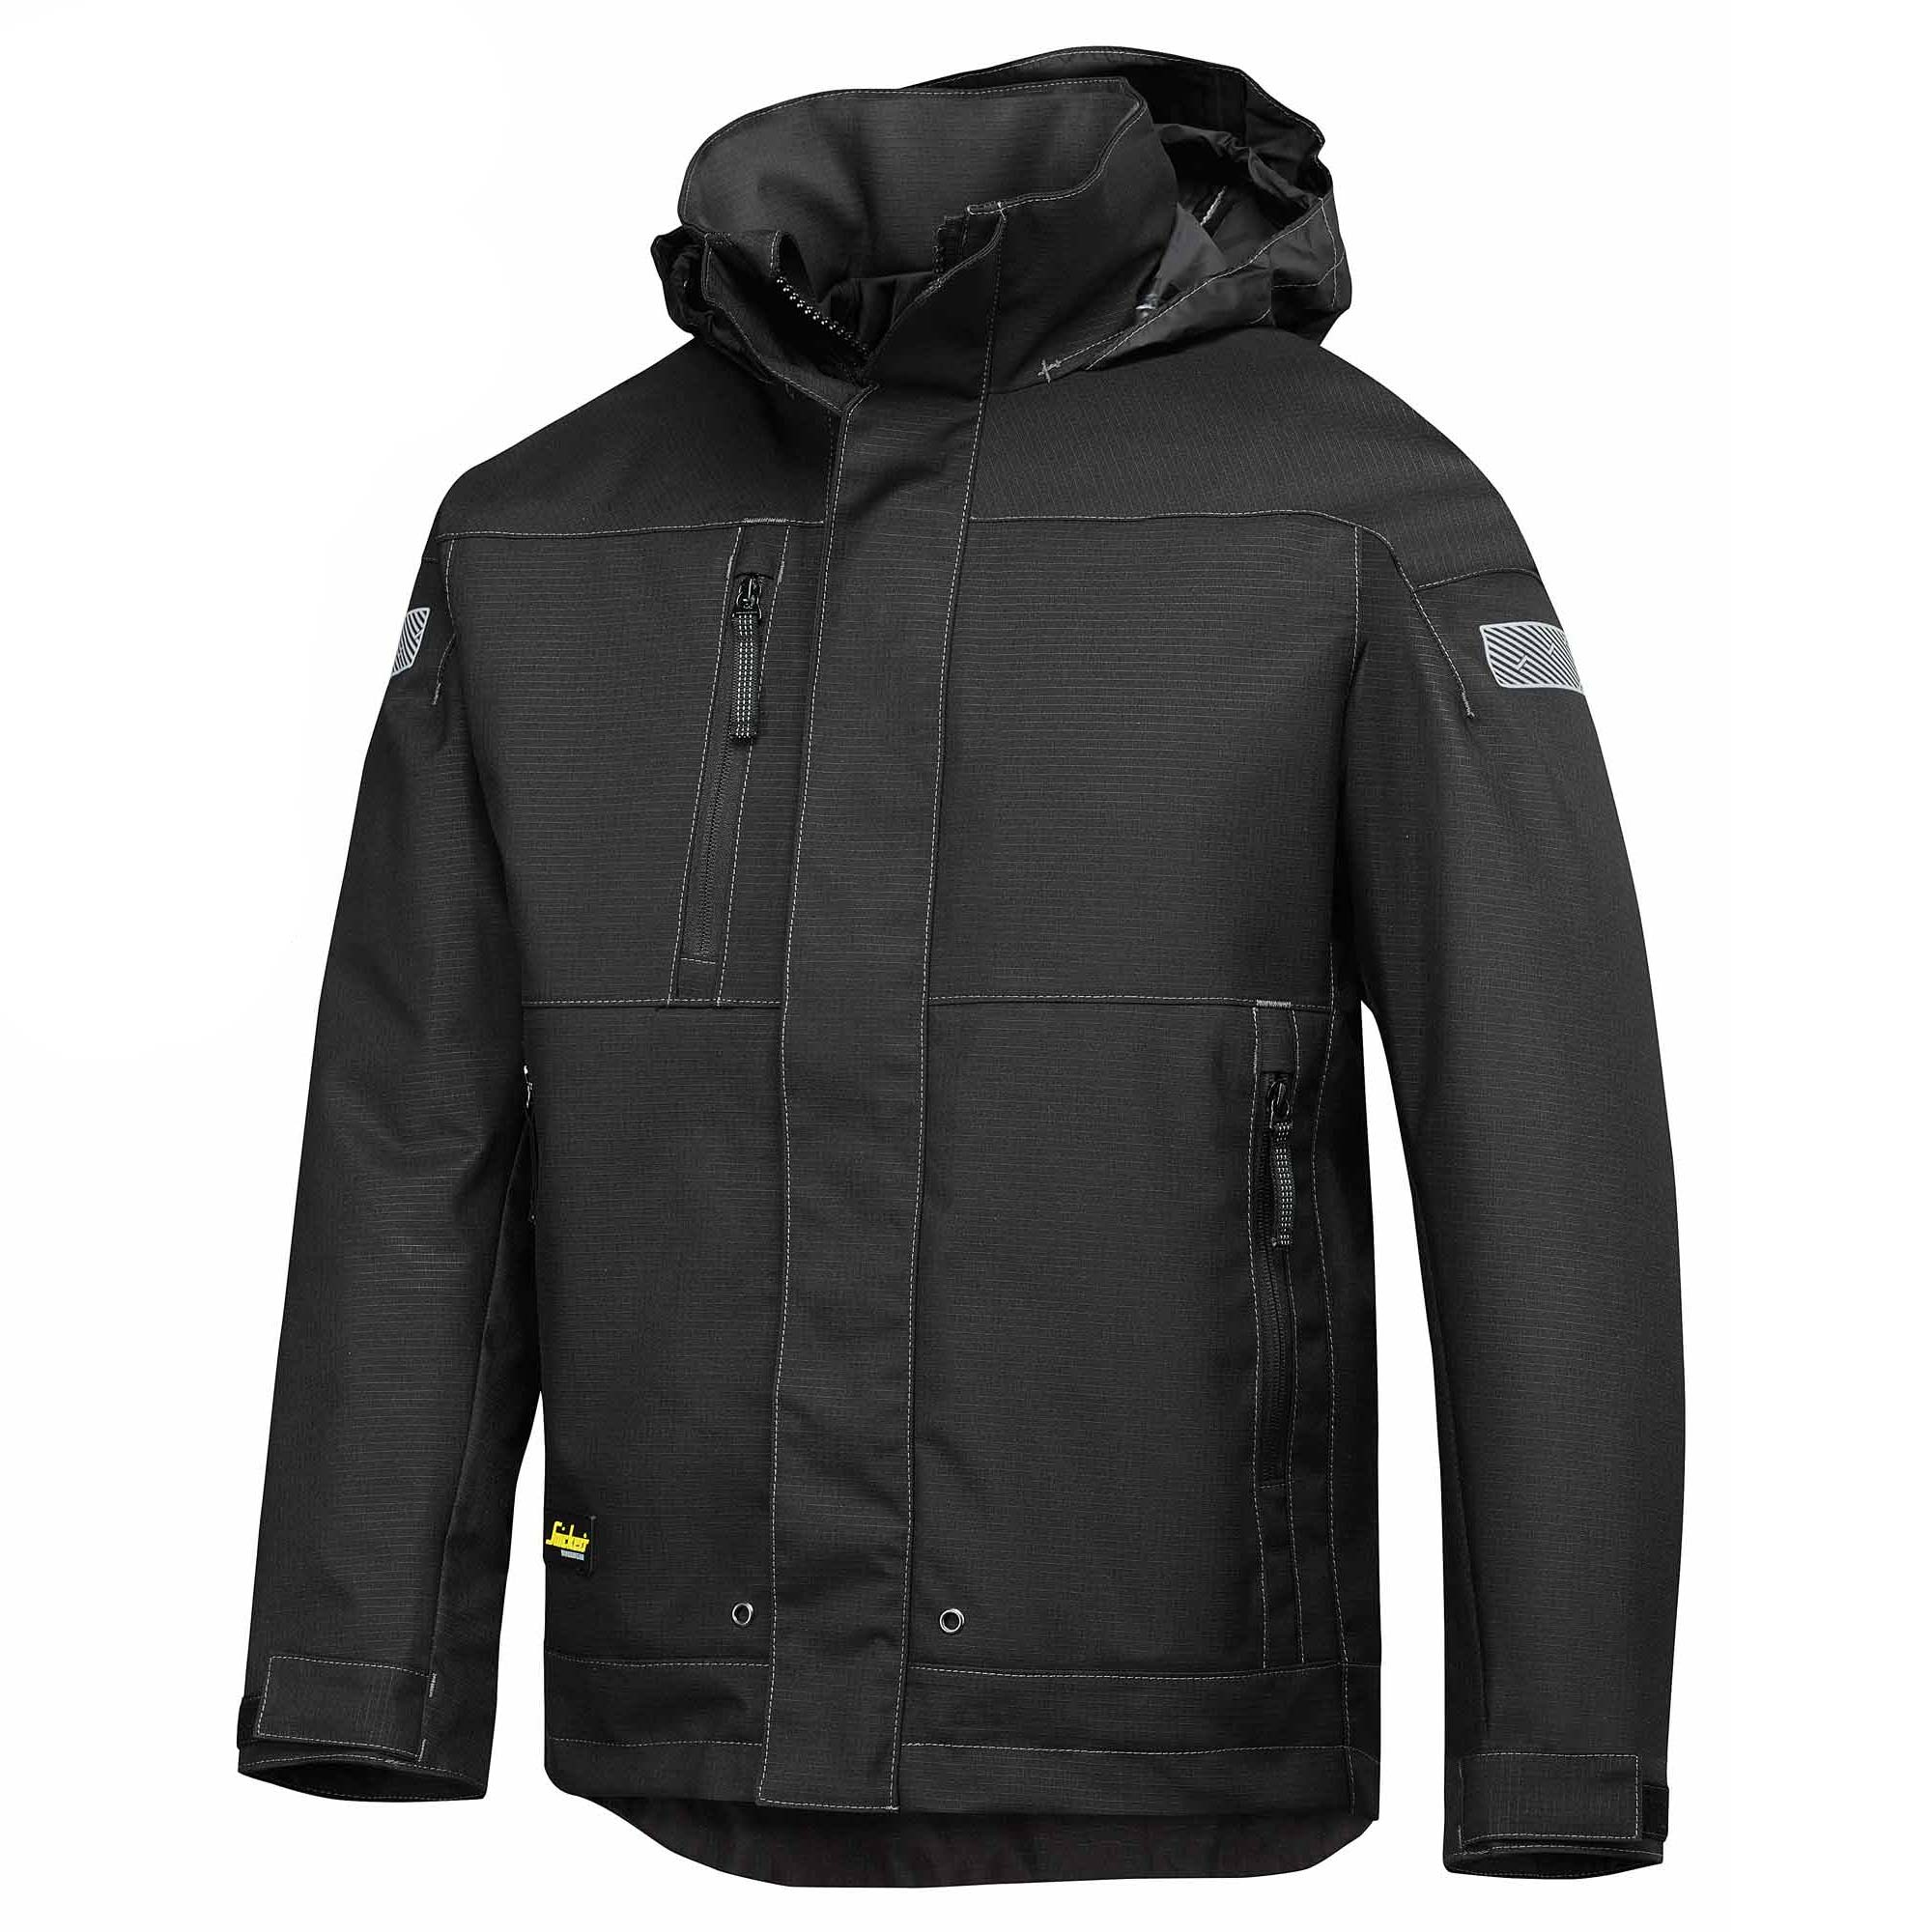 Winter Jacket Clearance